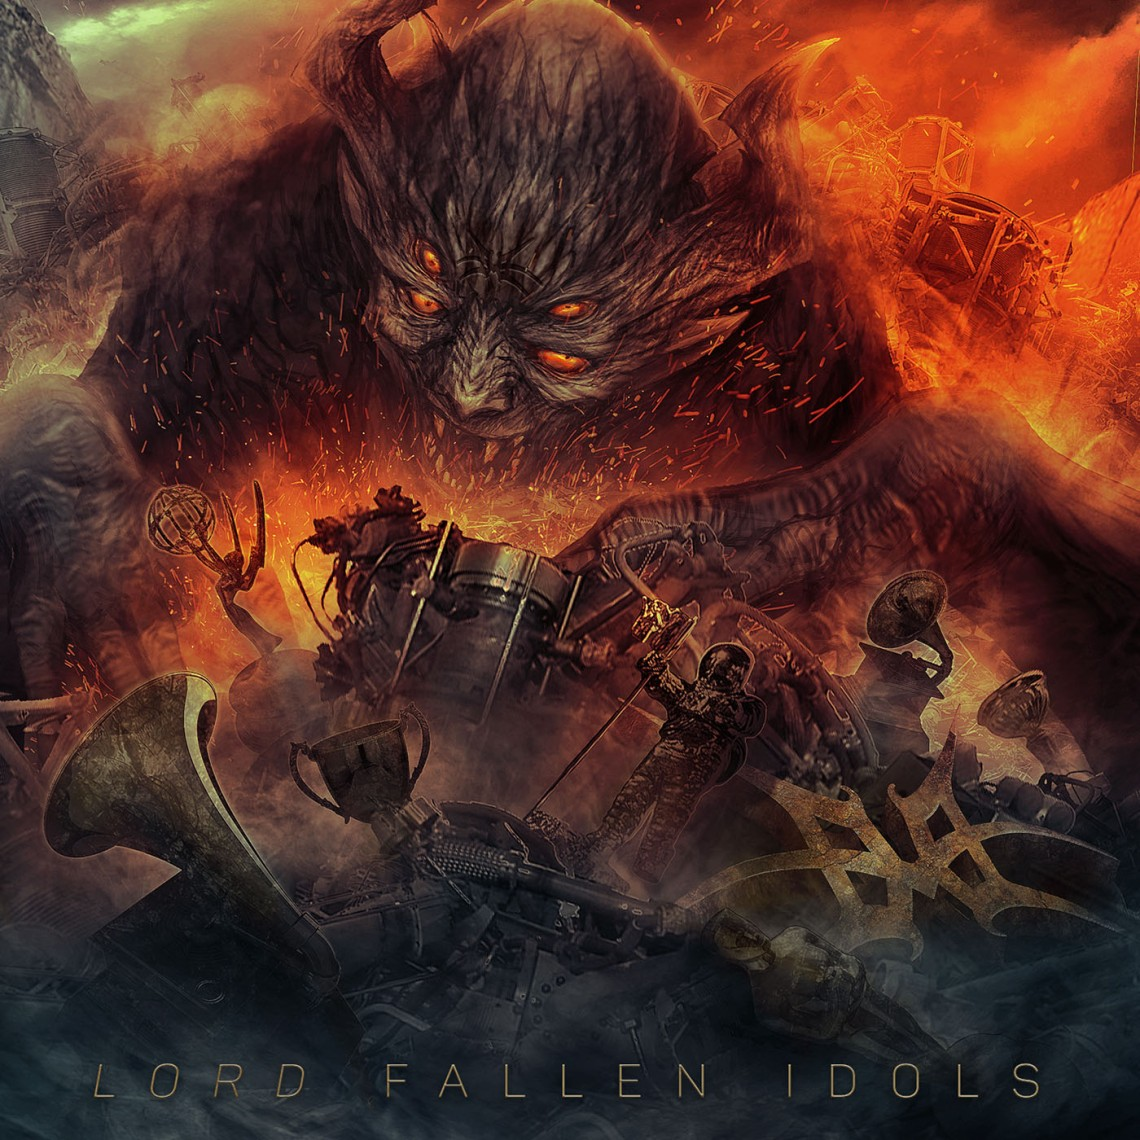 LORD-Fallen-Idols-cover-art